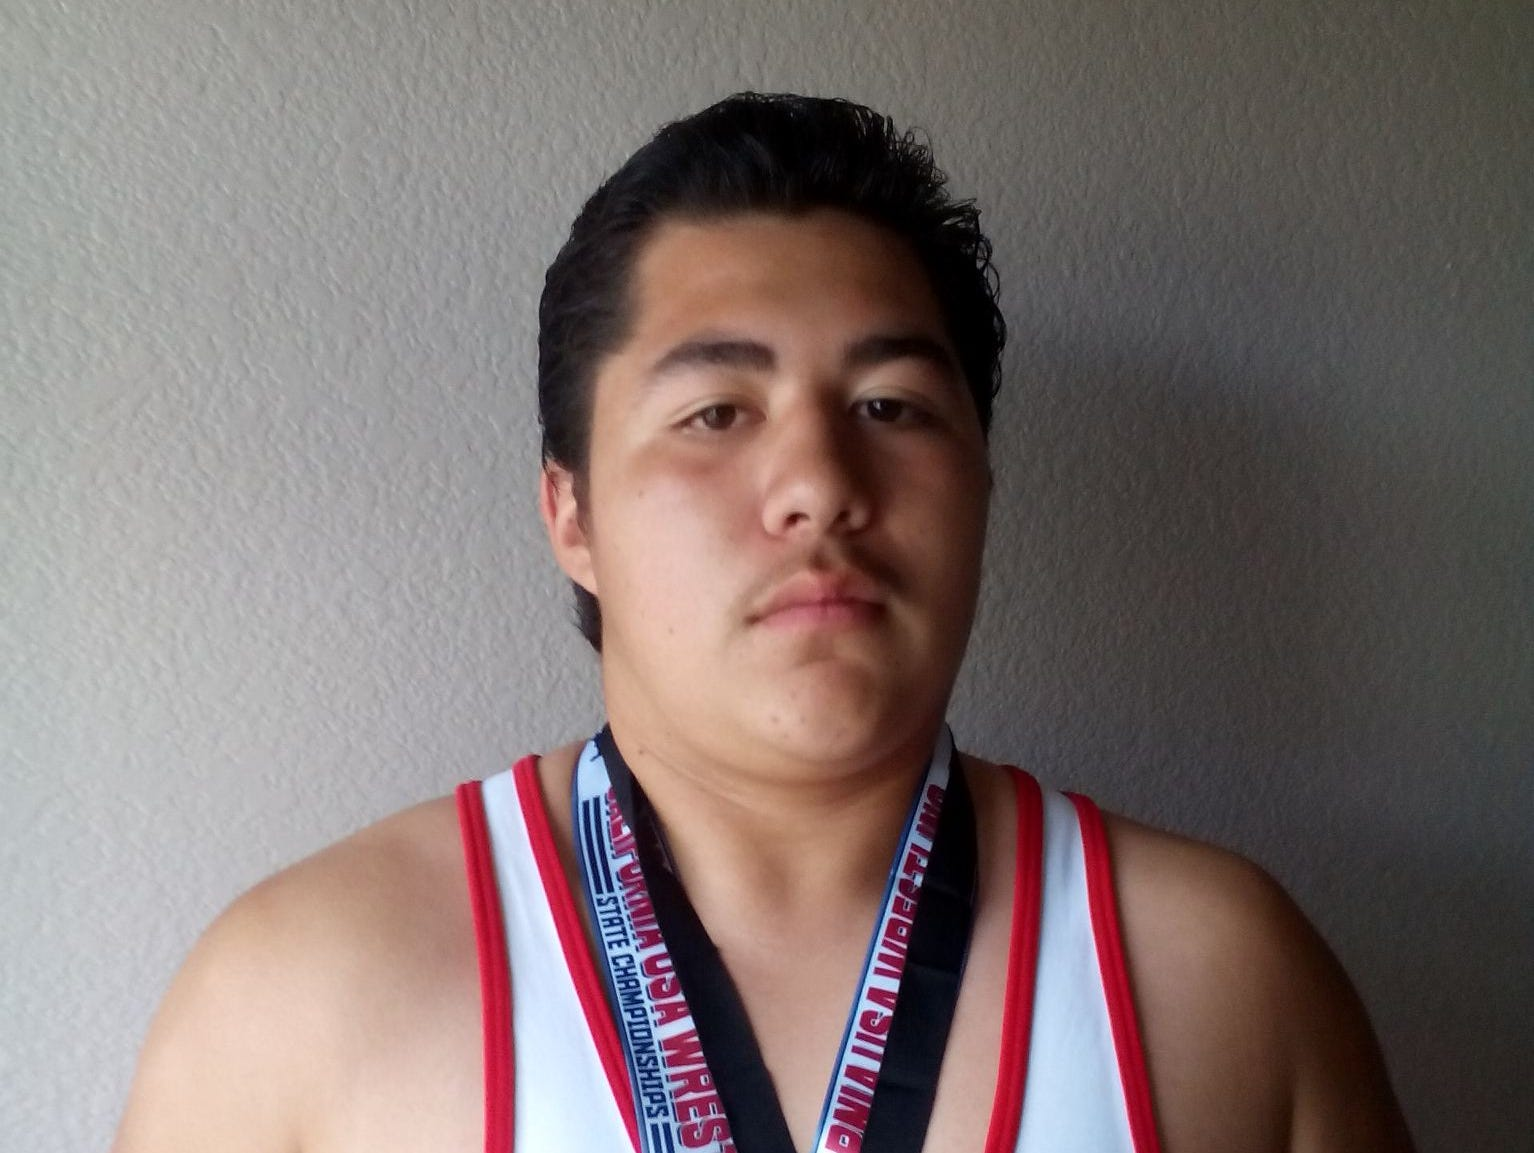 Zachary Ruelas poses with some of his medals he's earned in wrestling over the years